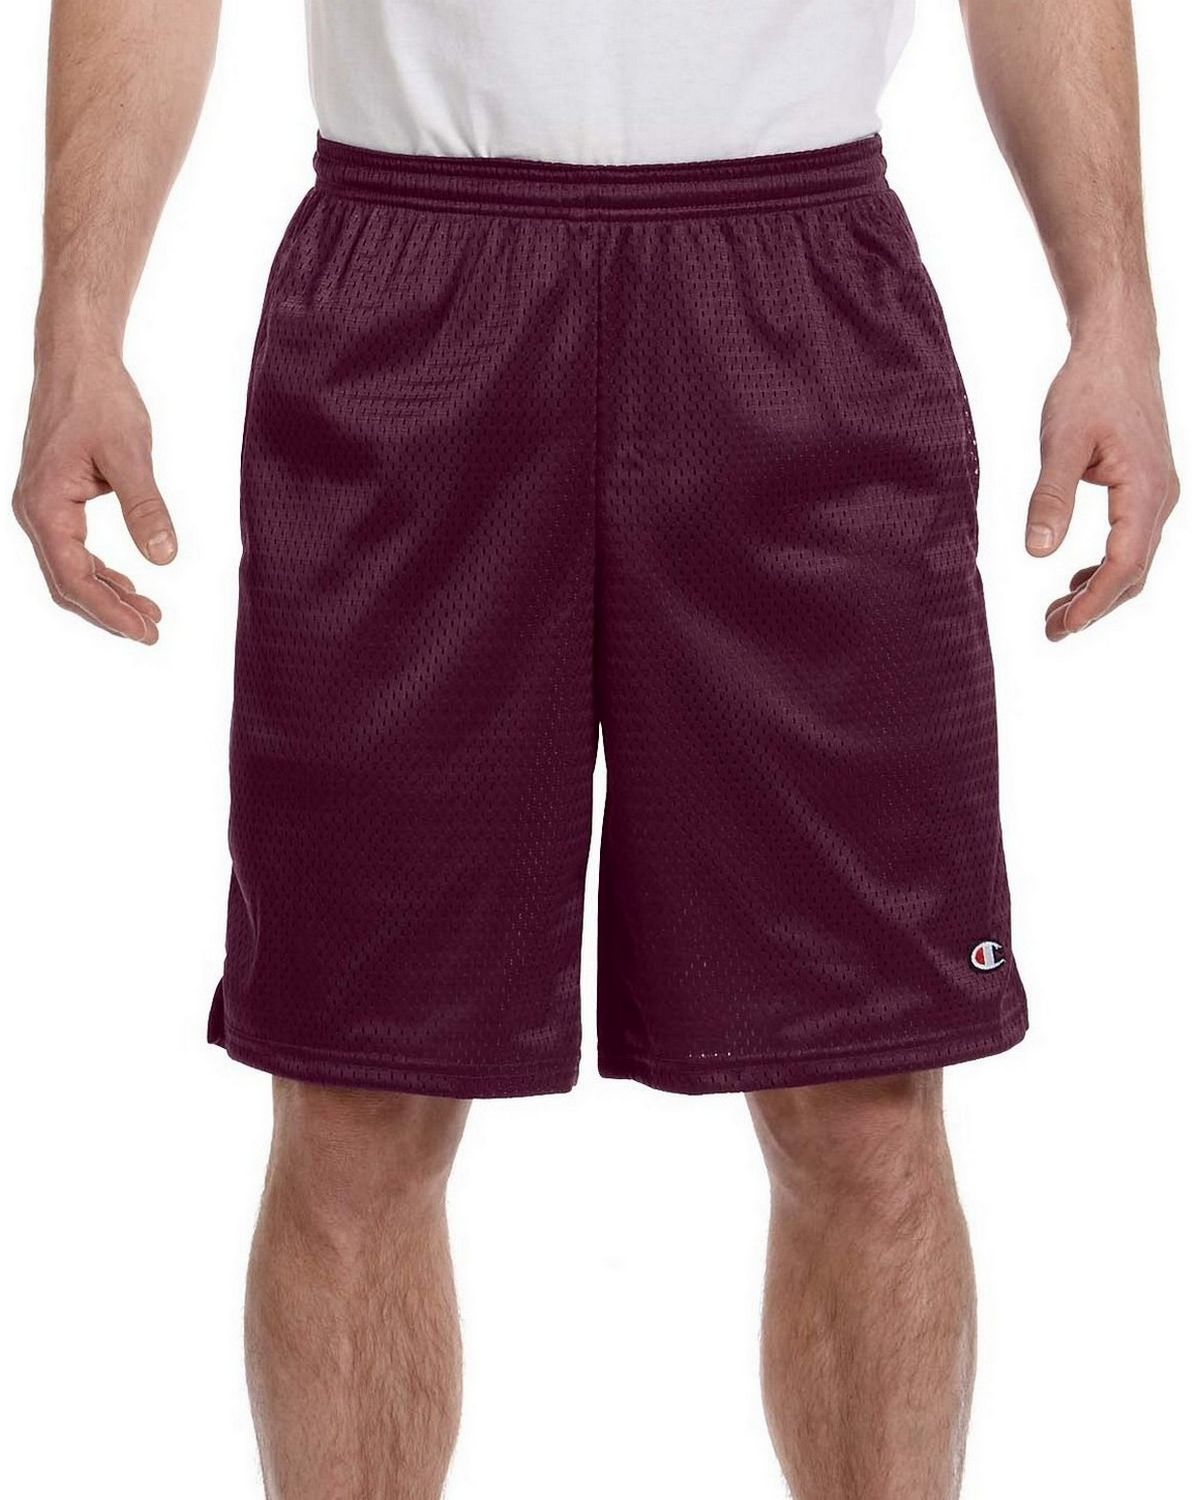 Champion 81622 Shorts with Pockets - Maroon - L 81622